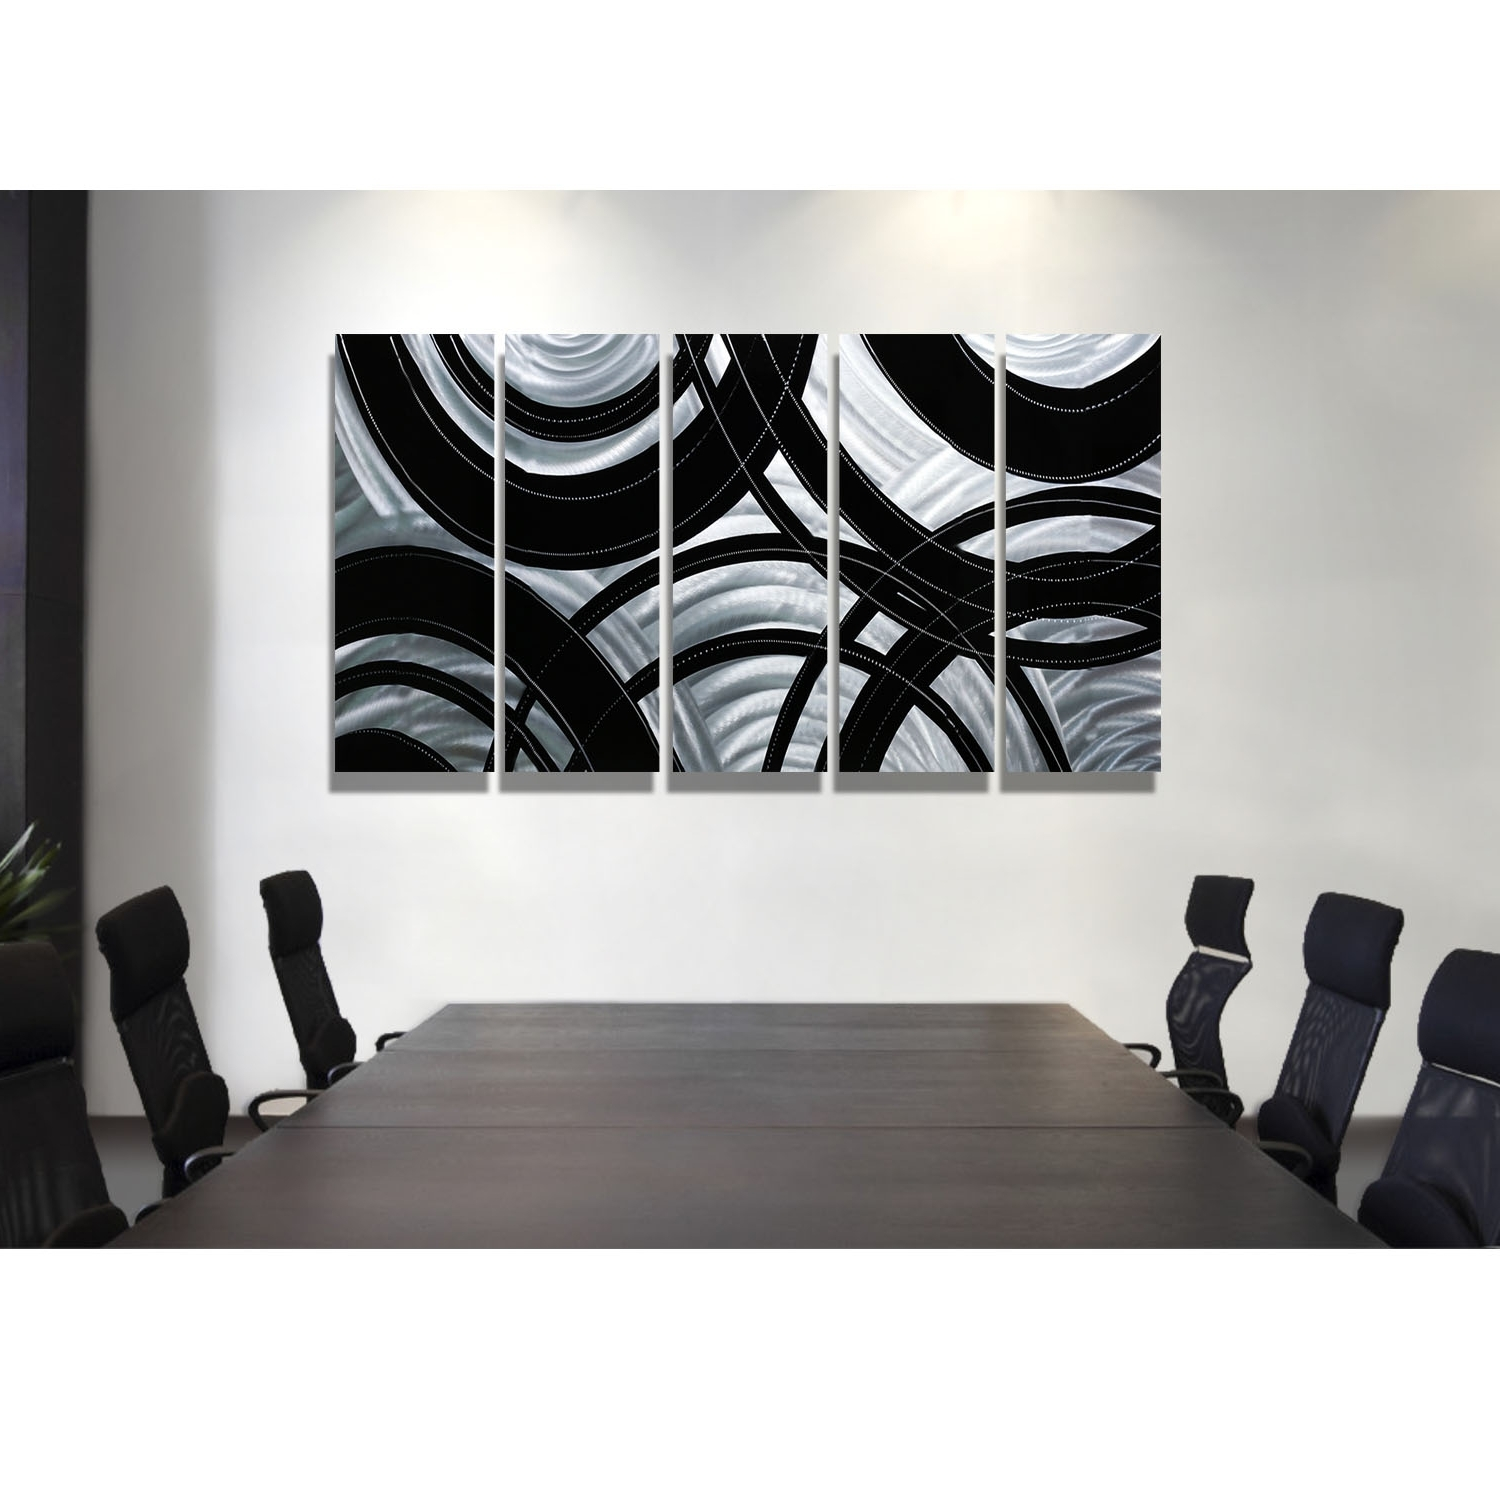 Synergy – Black And Silver Metal Wall Art – 5 Panel Wall Décor Within Well Known Black Metal Wall Art (Gallery 2 of 20)